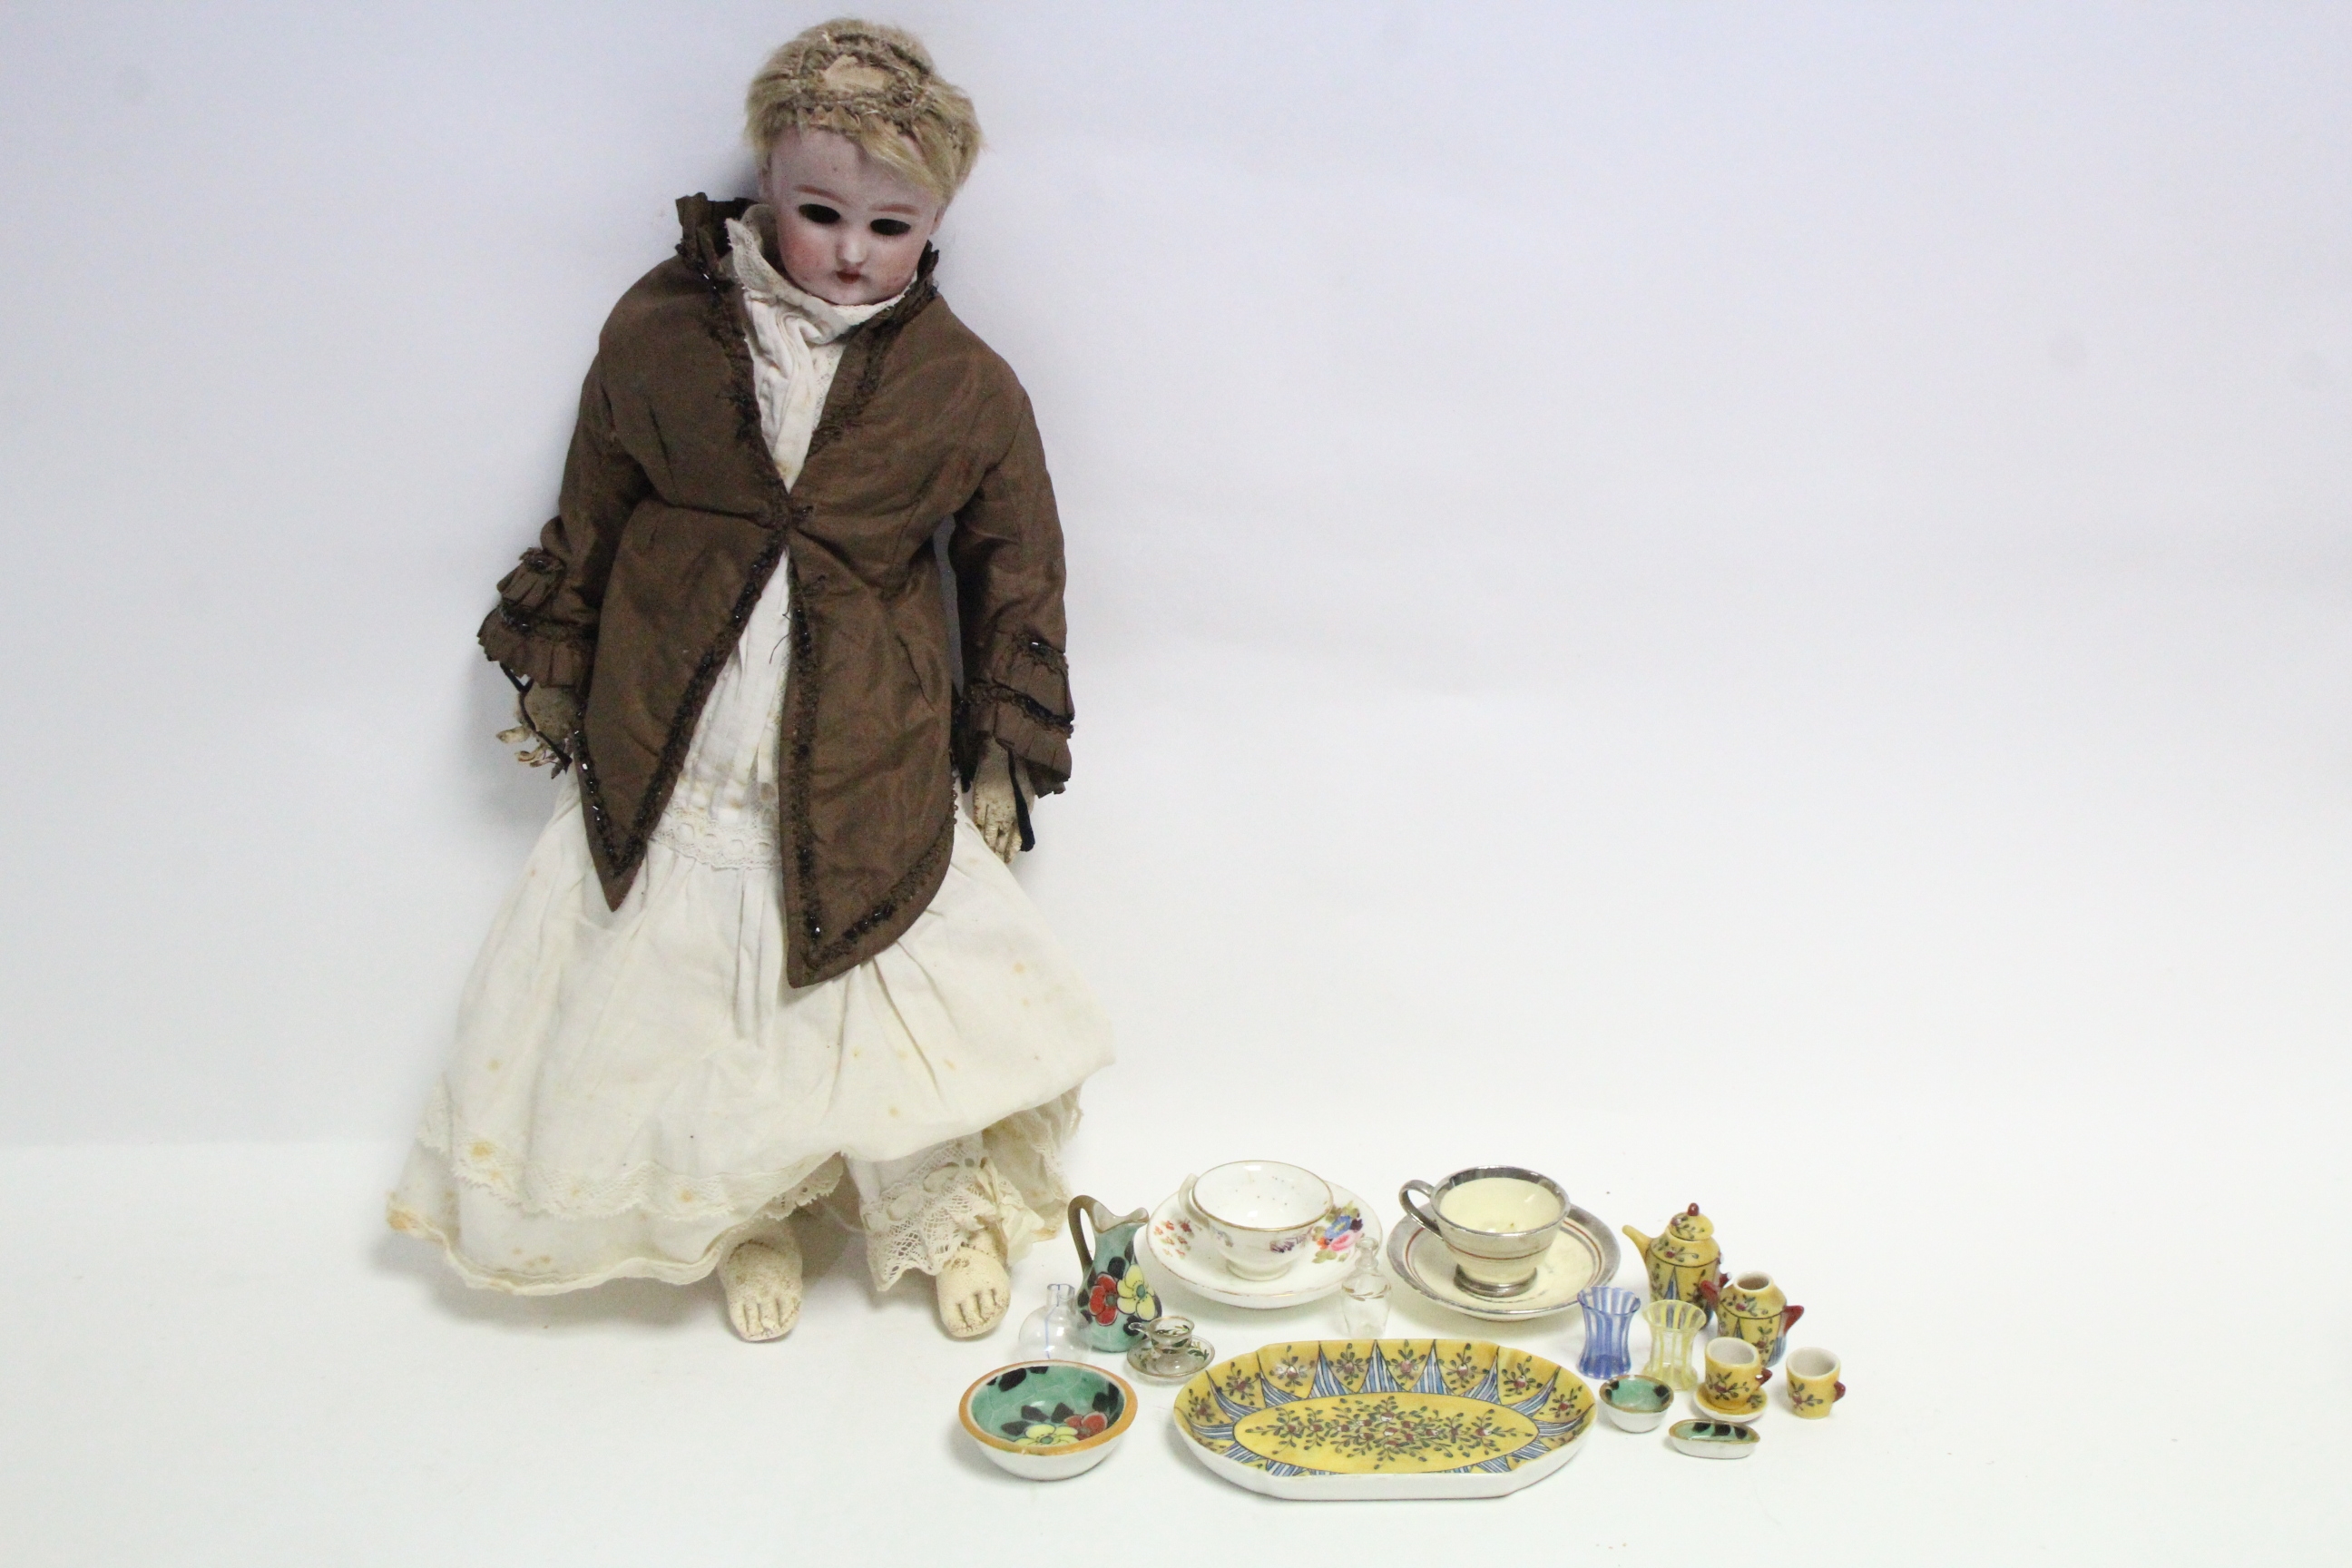 A German bisque head girl doll (41019 D. E. P.) with sleeping eyes, painted features & kid leather